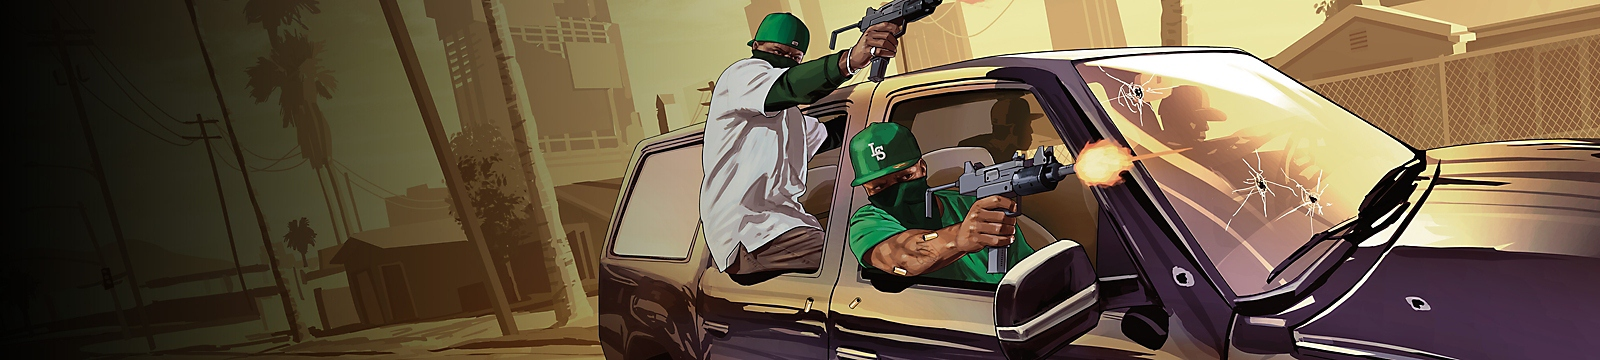 Grand Theft Auto Online - Arte de fondo PlayStation Plus